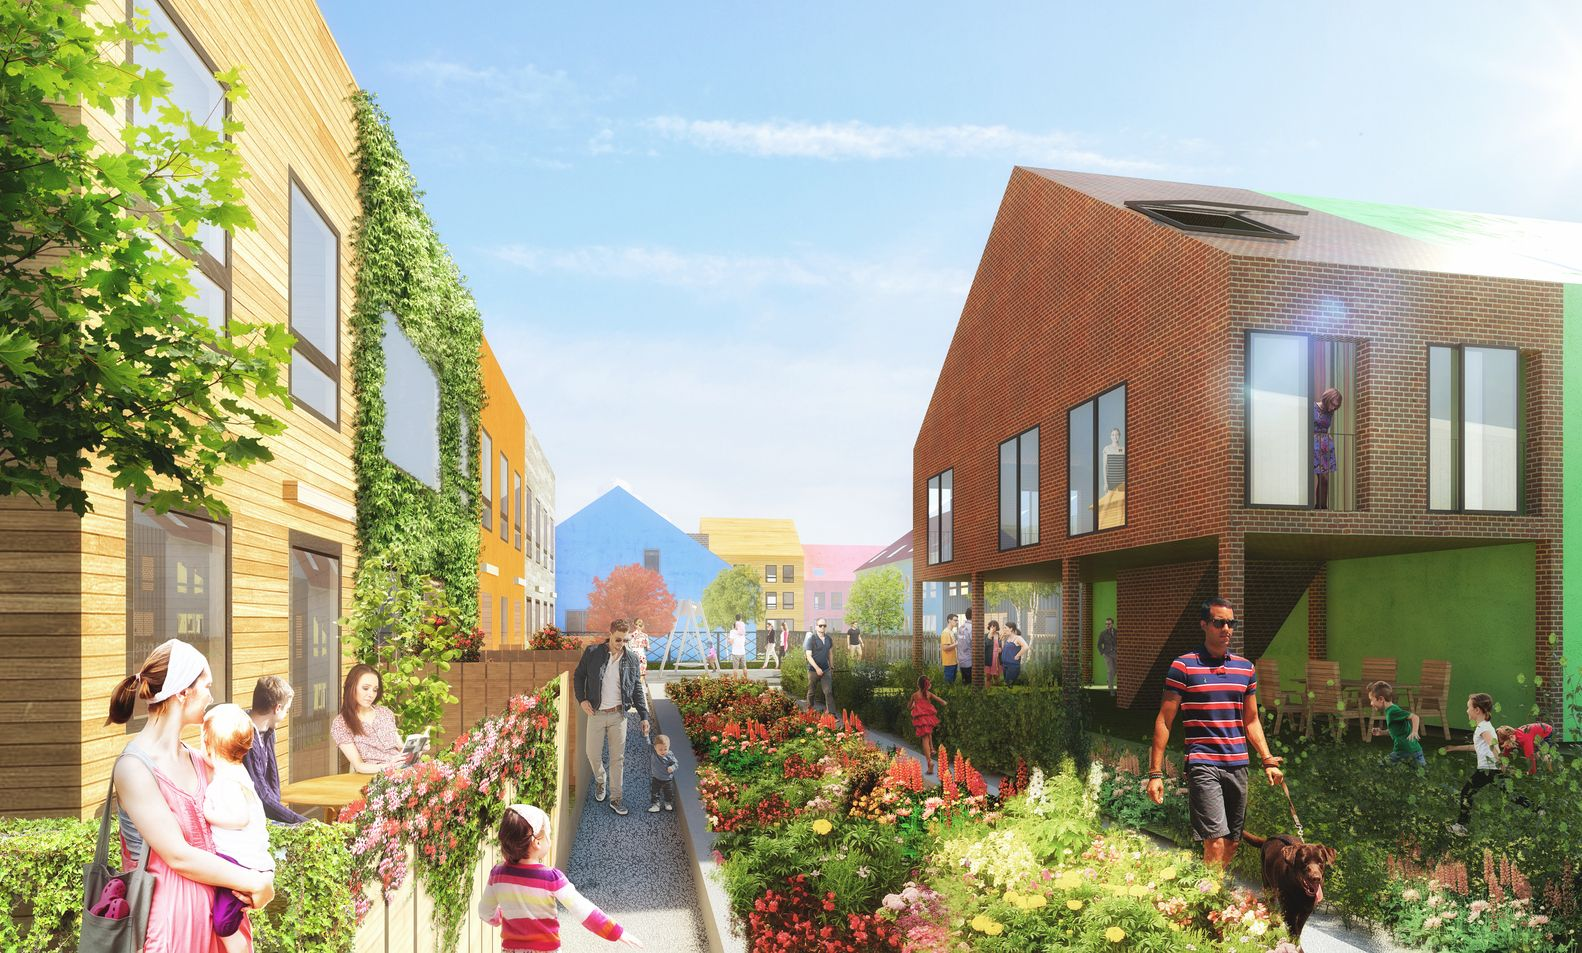 Gallery Of Mvrdv Partners With Traumhaus To Reinvent Affordable Living In The Suburbs 4 Affordable Housing Suburban House Social Housing